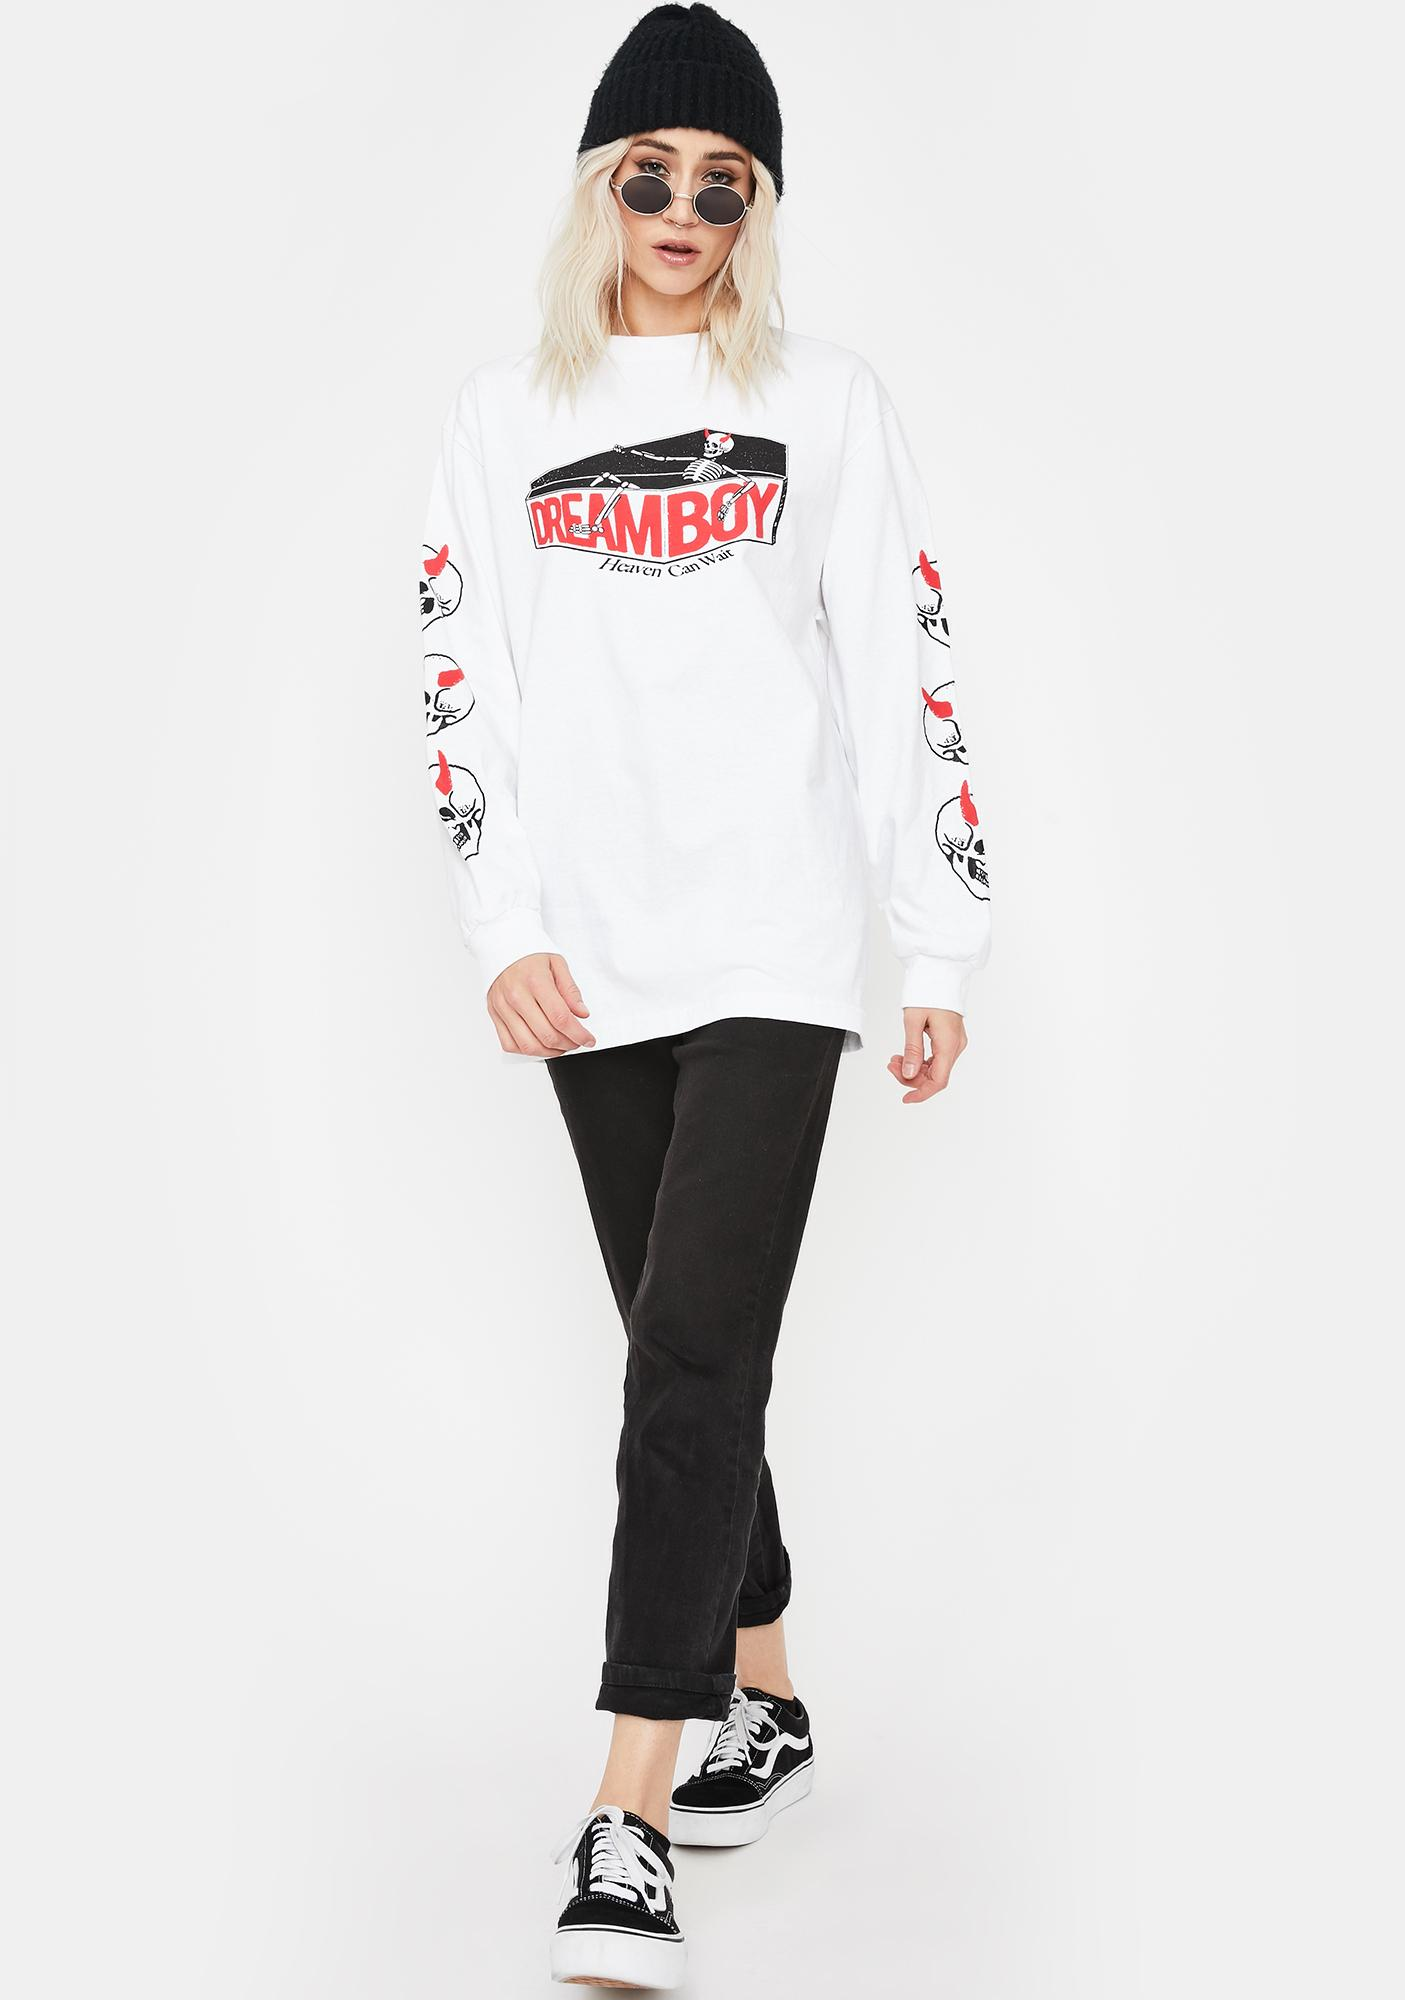 Dreamboy Coffin Long Sleeve Graphic Tee